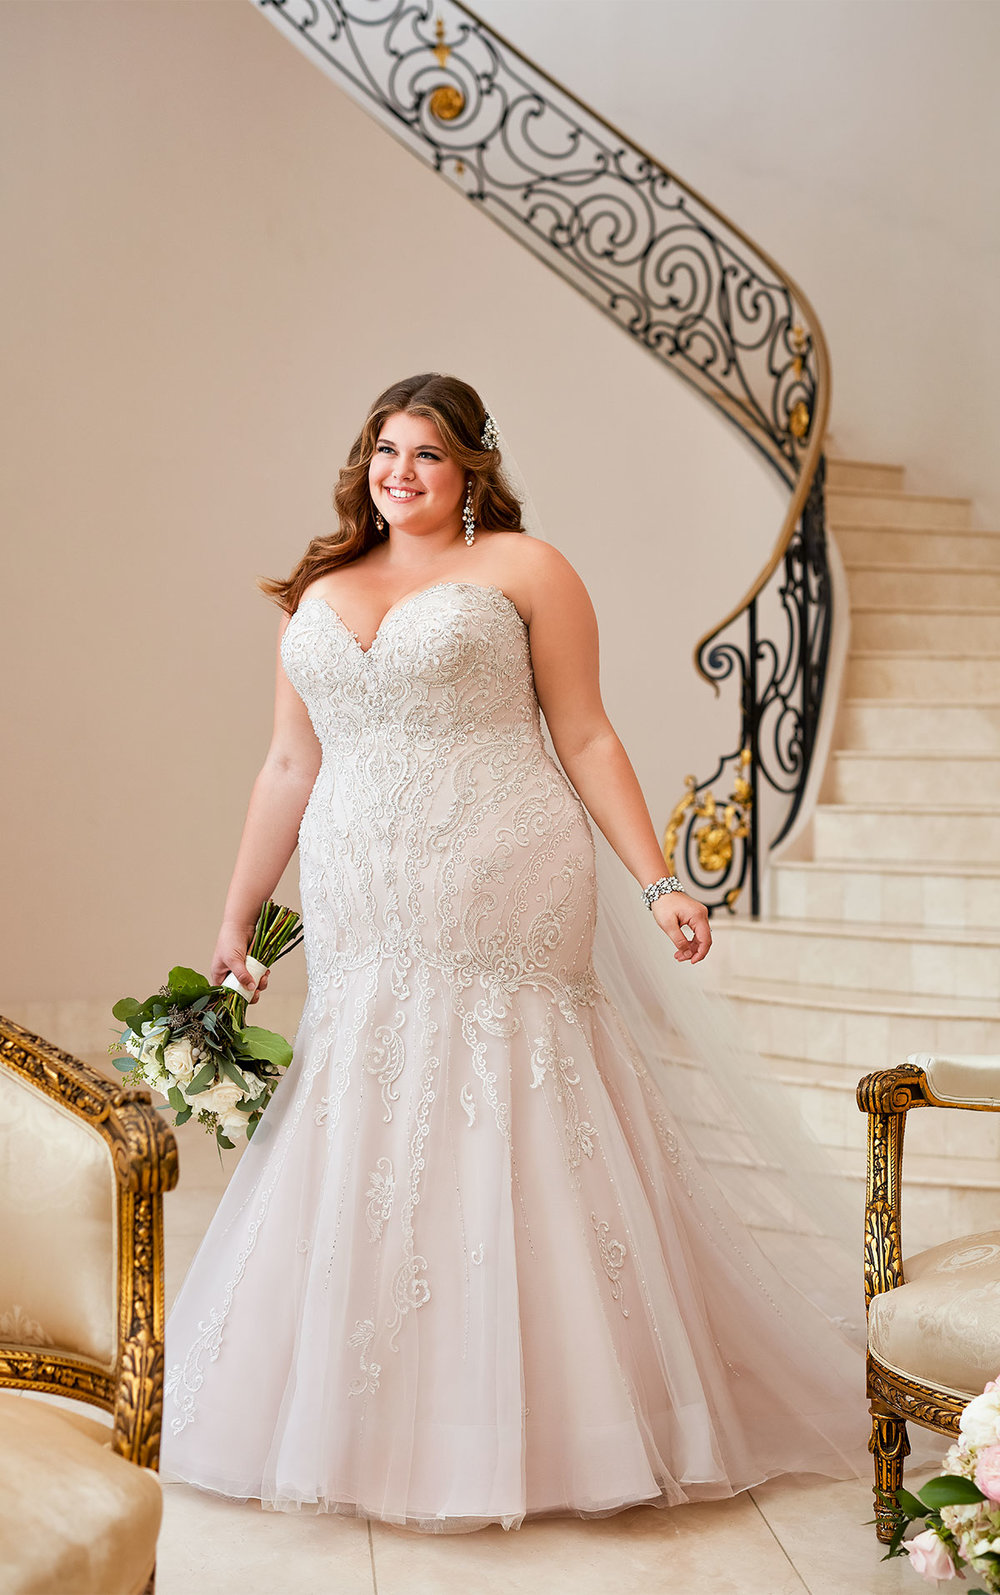 Plus Size Wedding Dresses — The Wedding Studio Bridal Shop ...